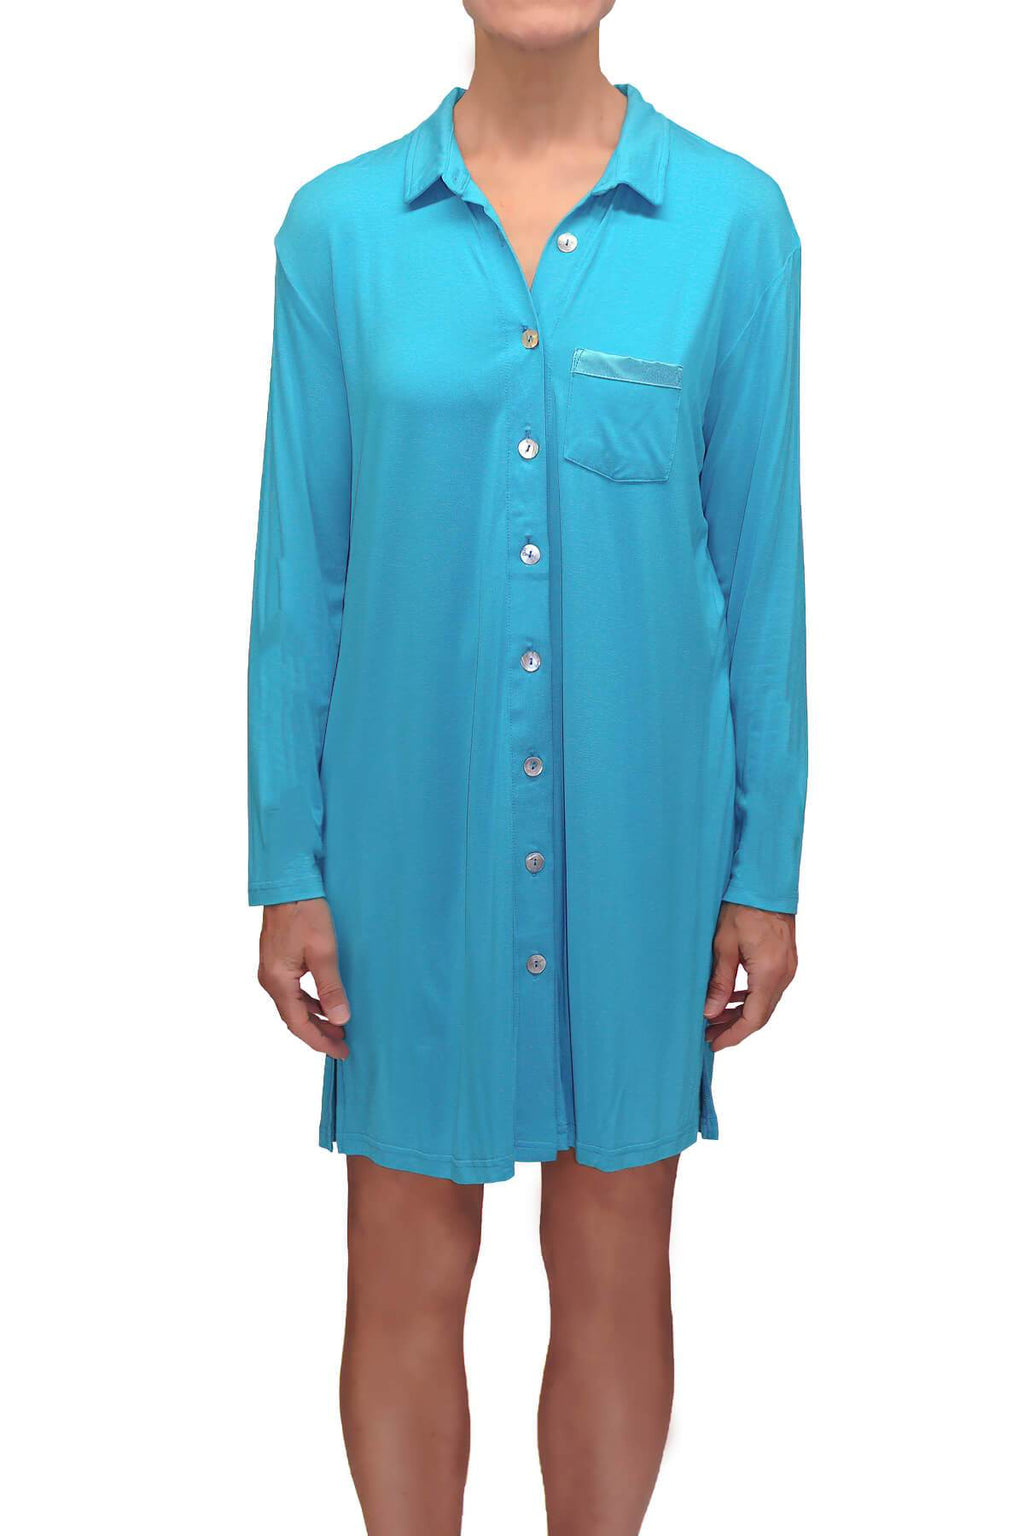 Megan Knit Lounge Shirt - Malta Blue Mystique Intimates